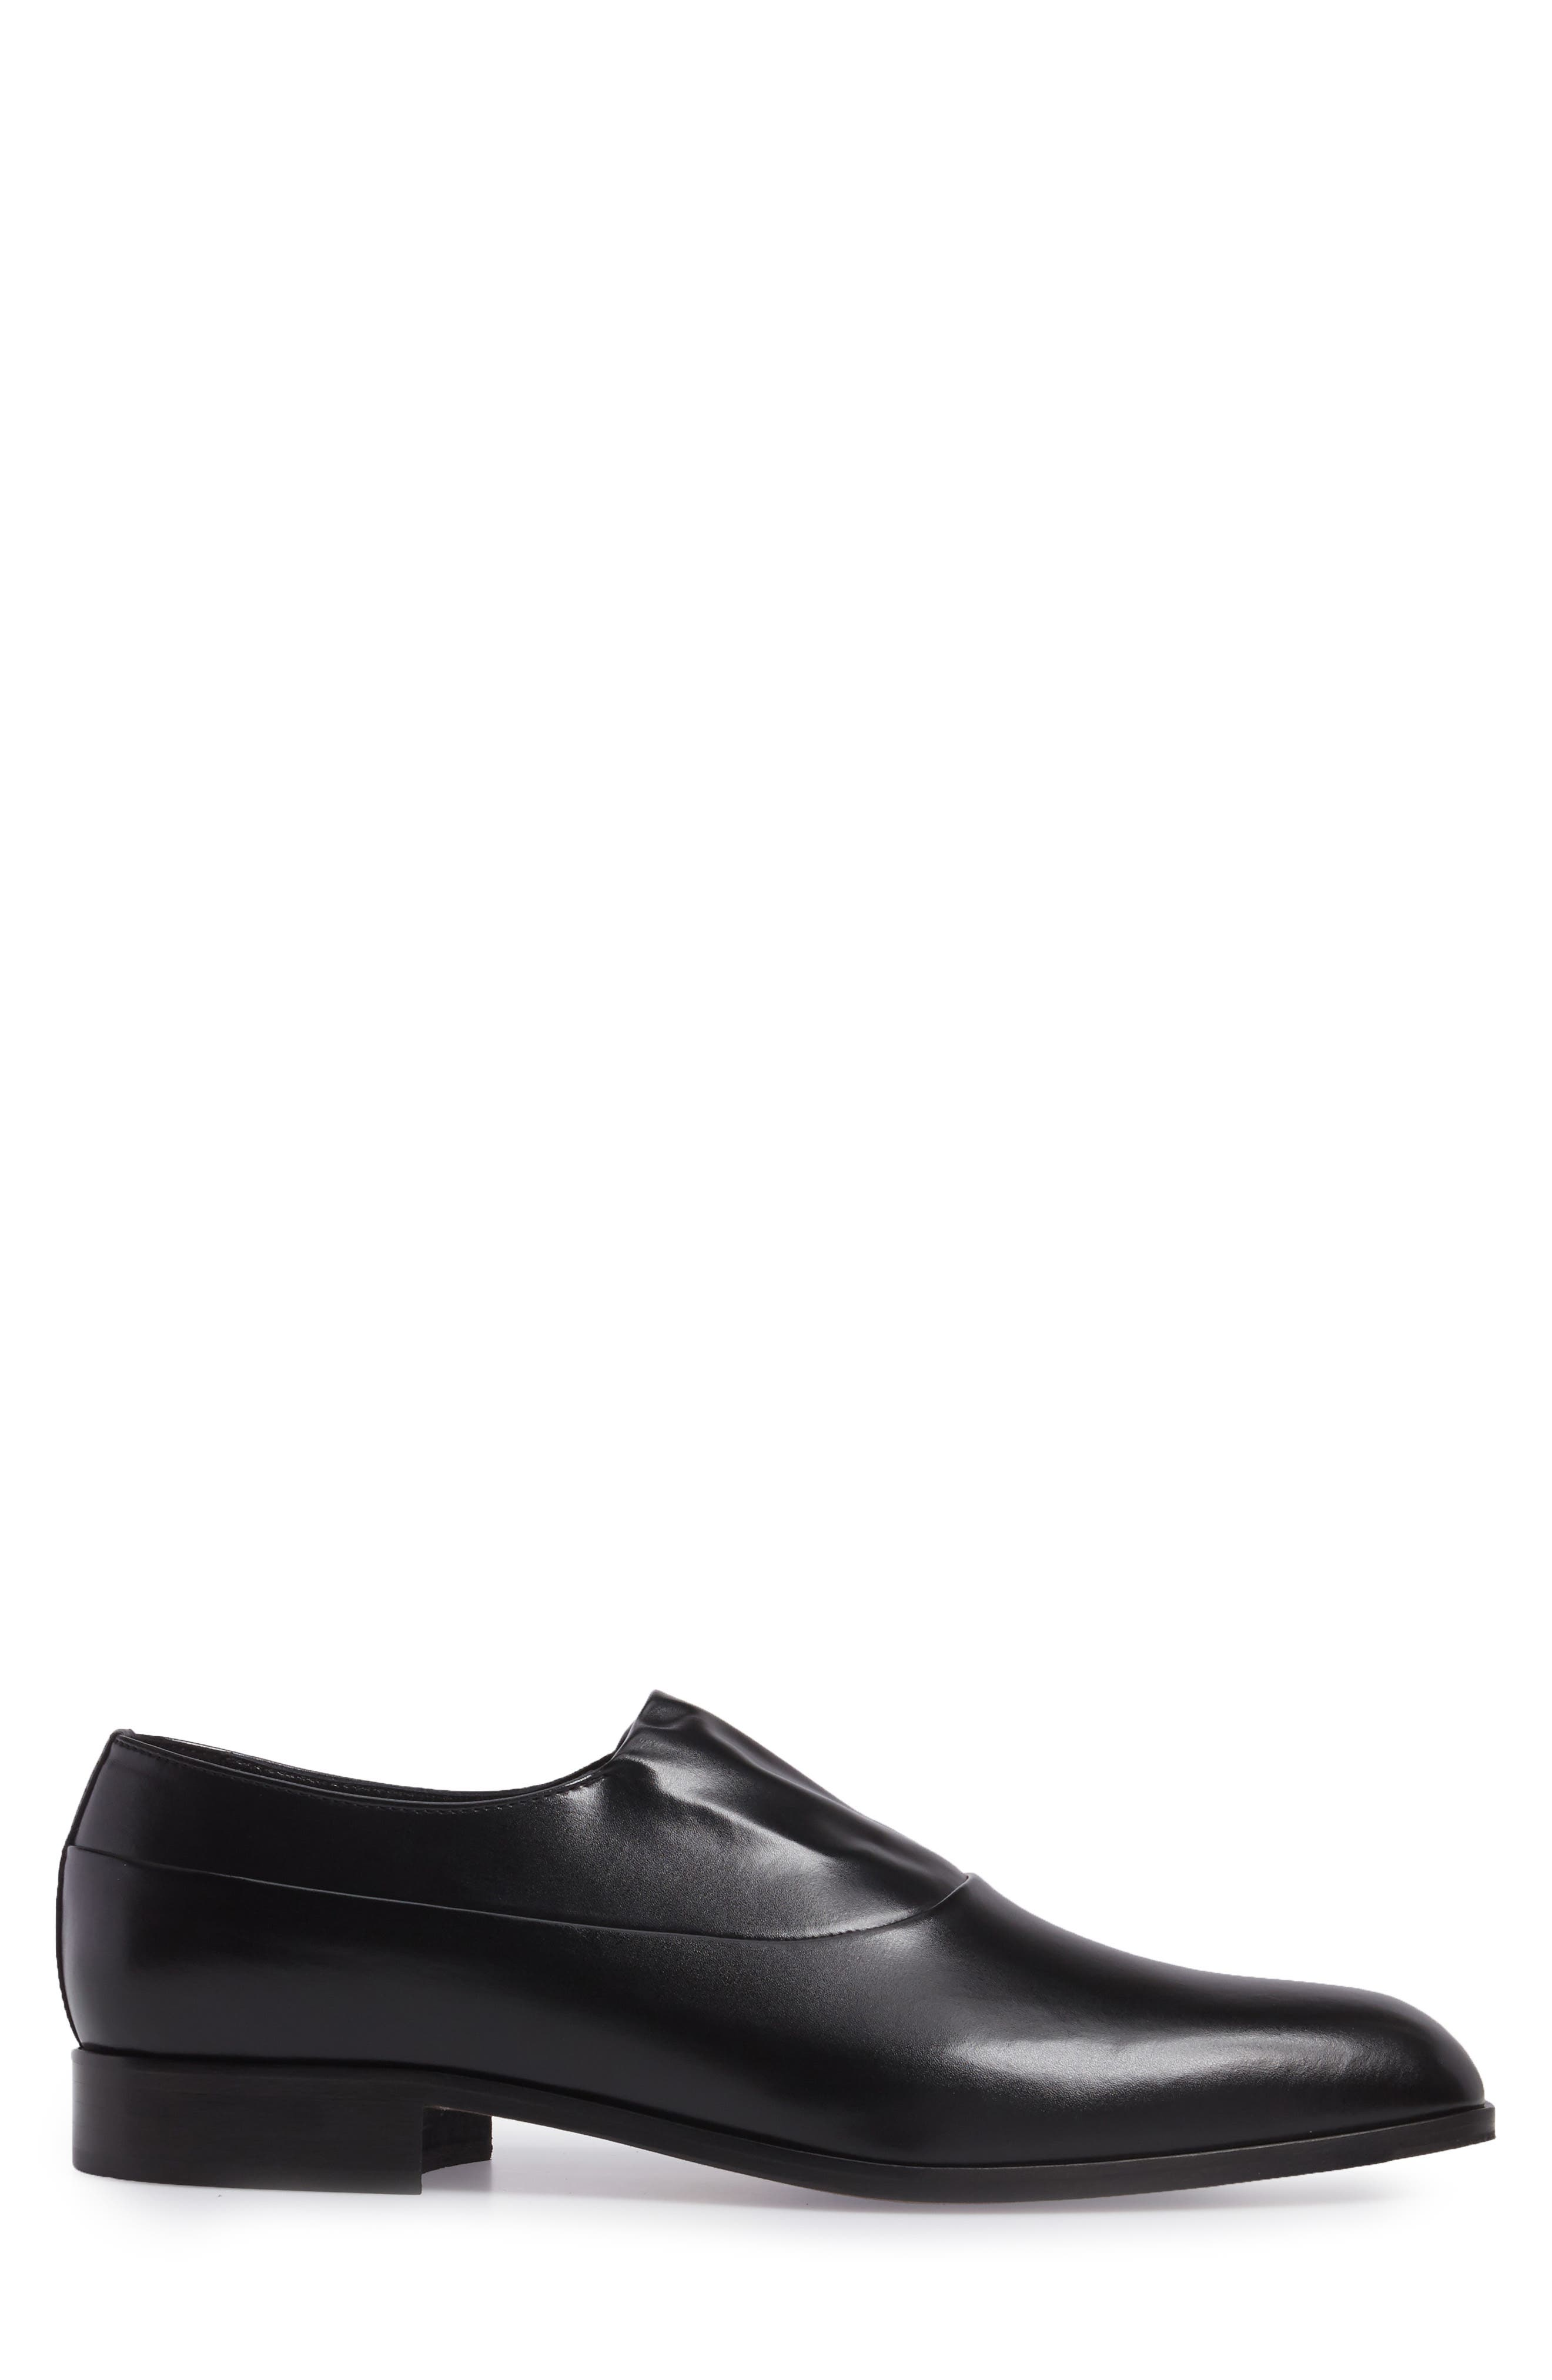 Marcio Venetian Loafer,                             Alternate thumbnail 3, color,                             002